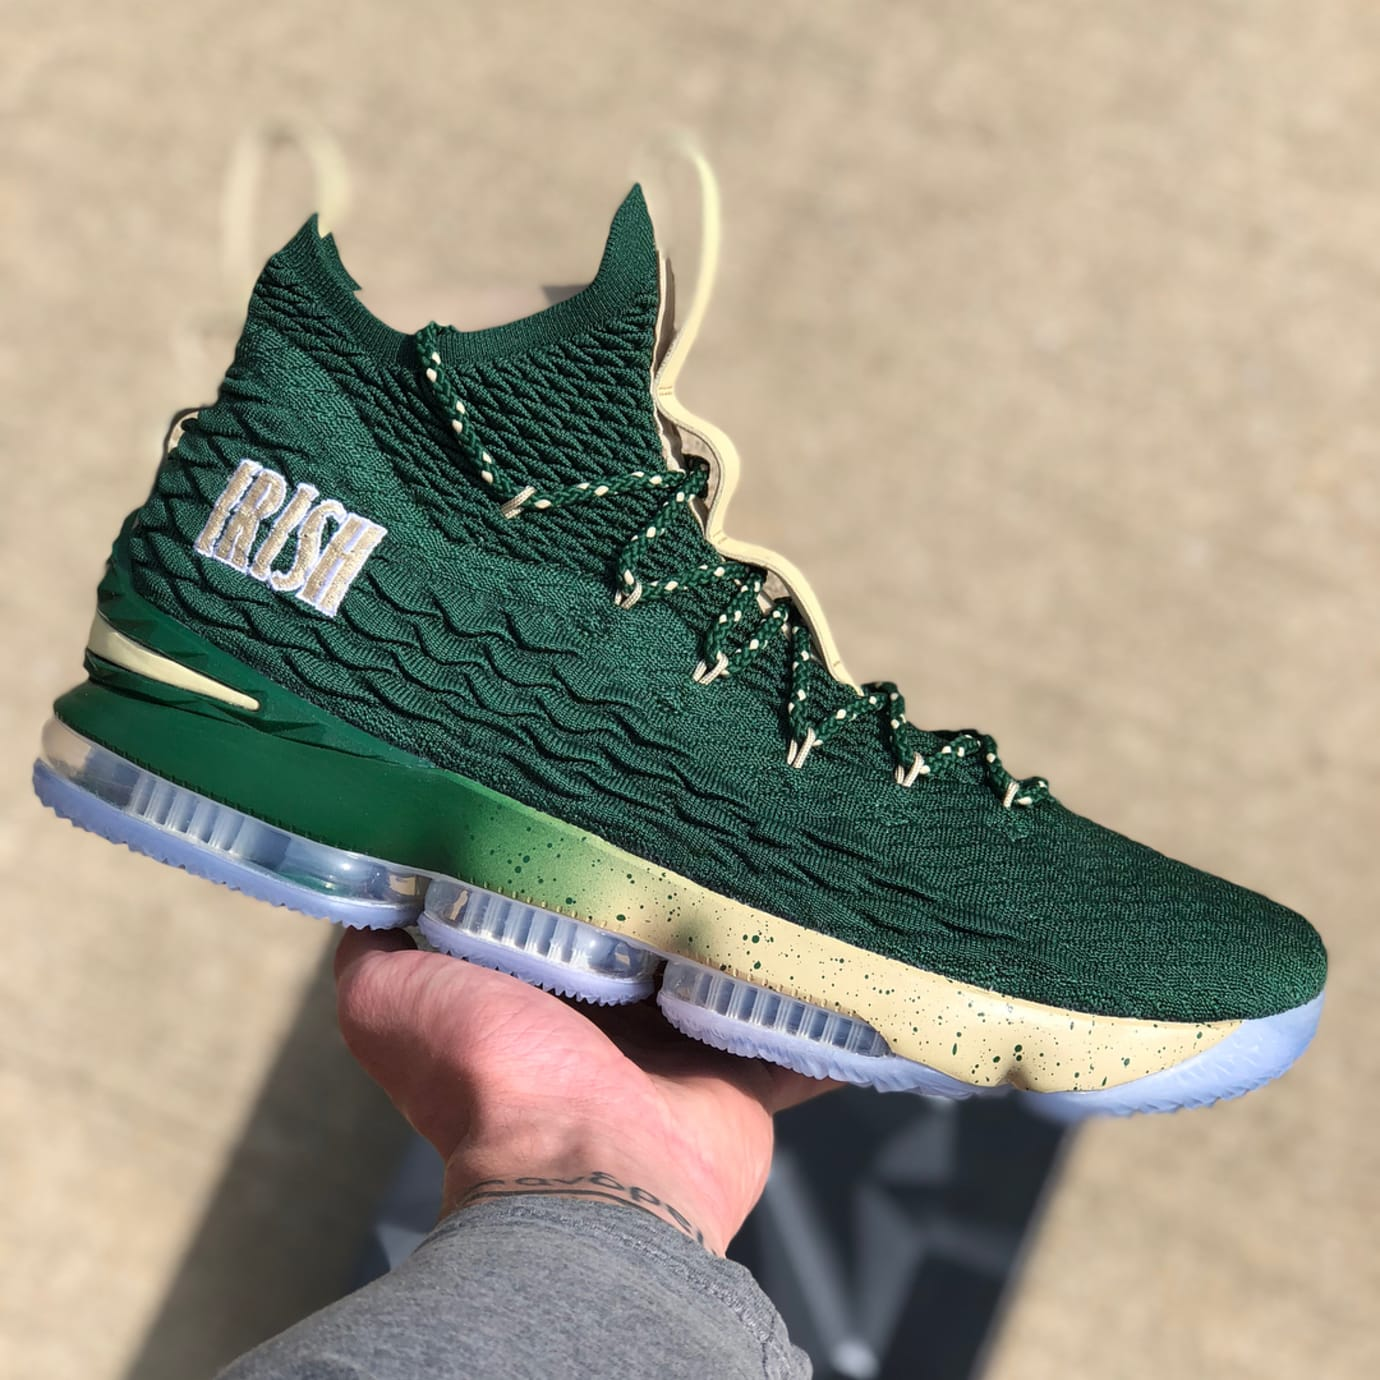 new arrival 357af 644e6 SVSM Nike LeBron 15 PE | Sole Collector